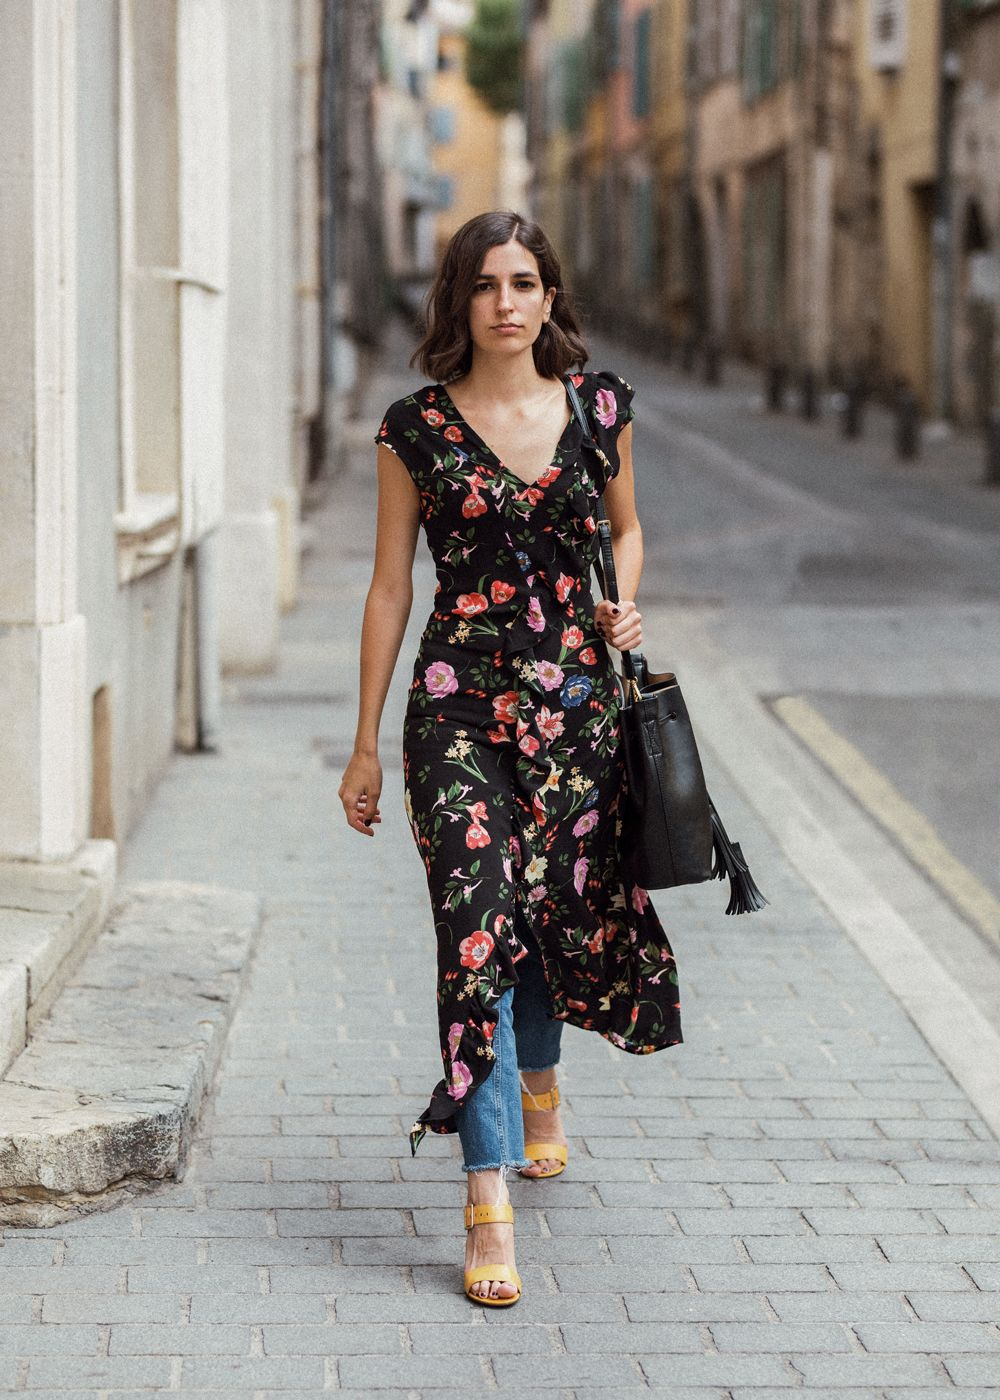 The summer dress you can wear all year long